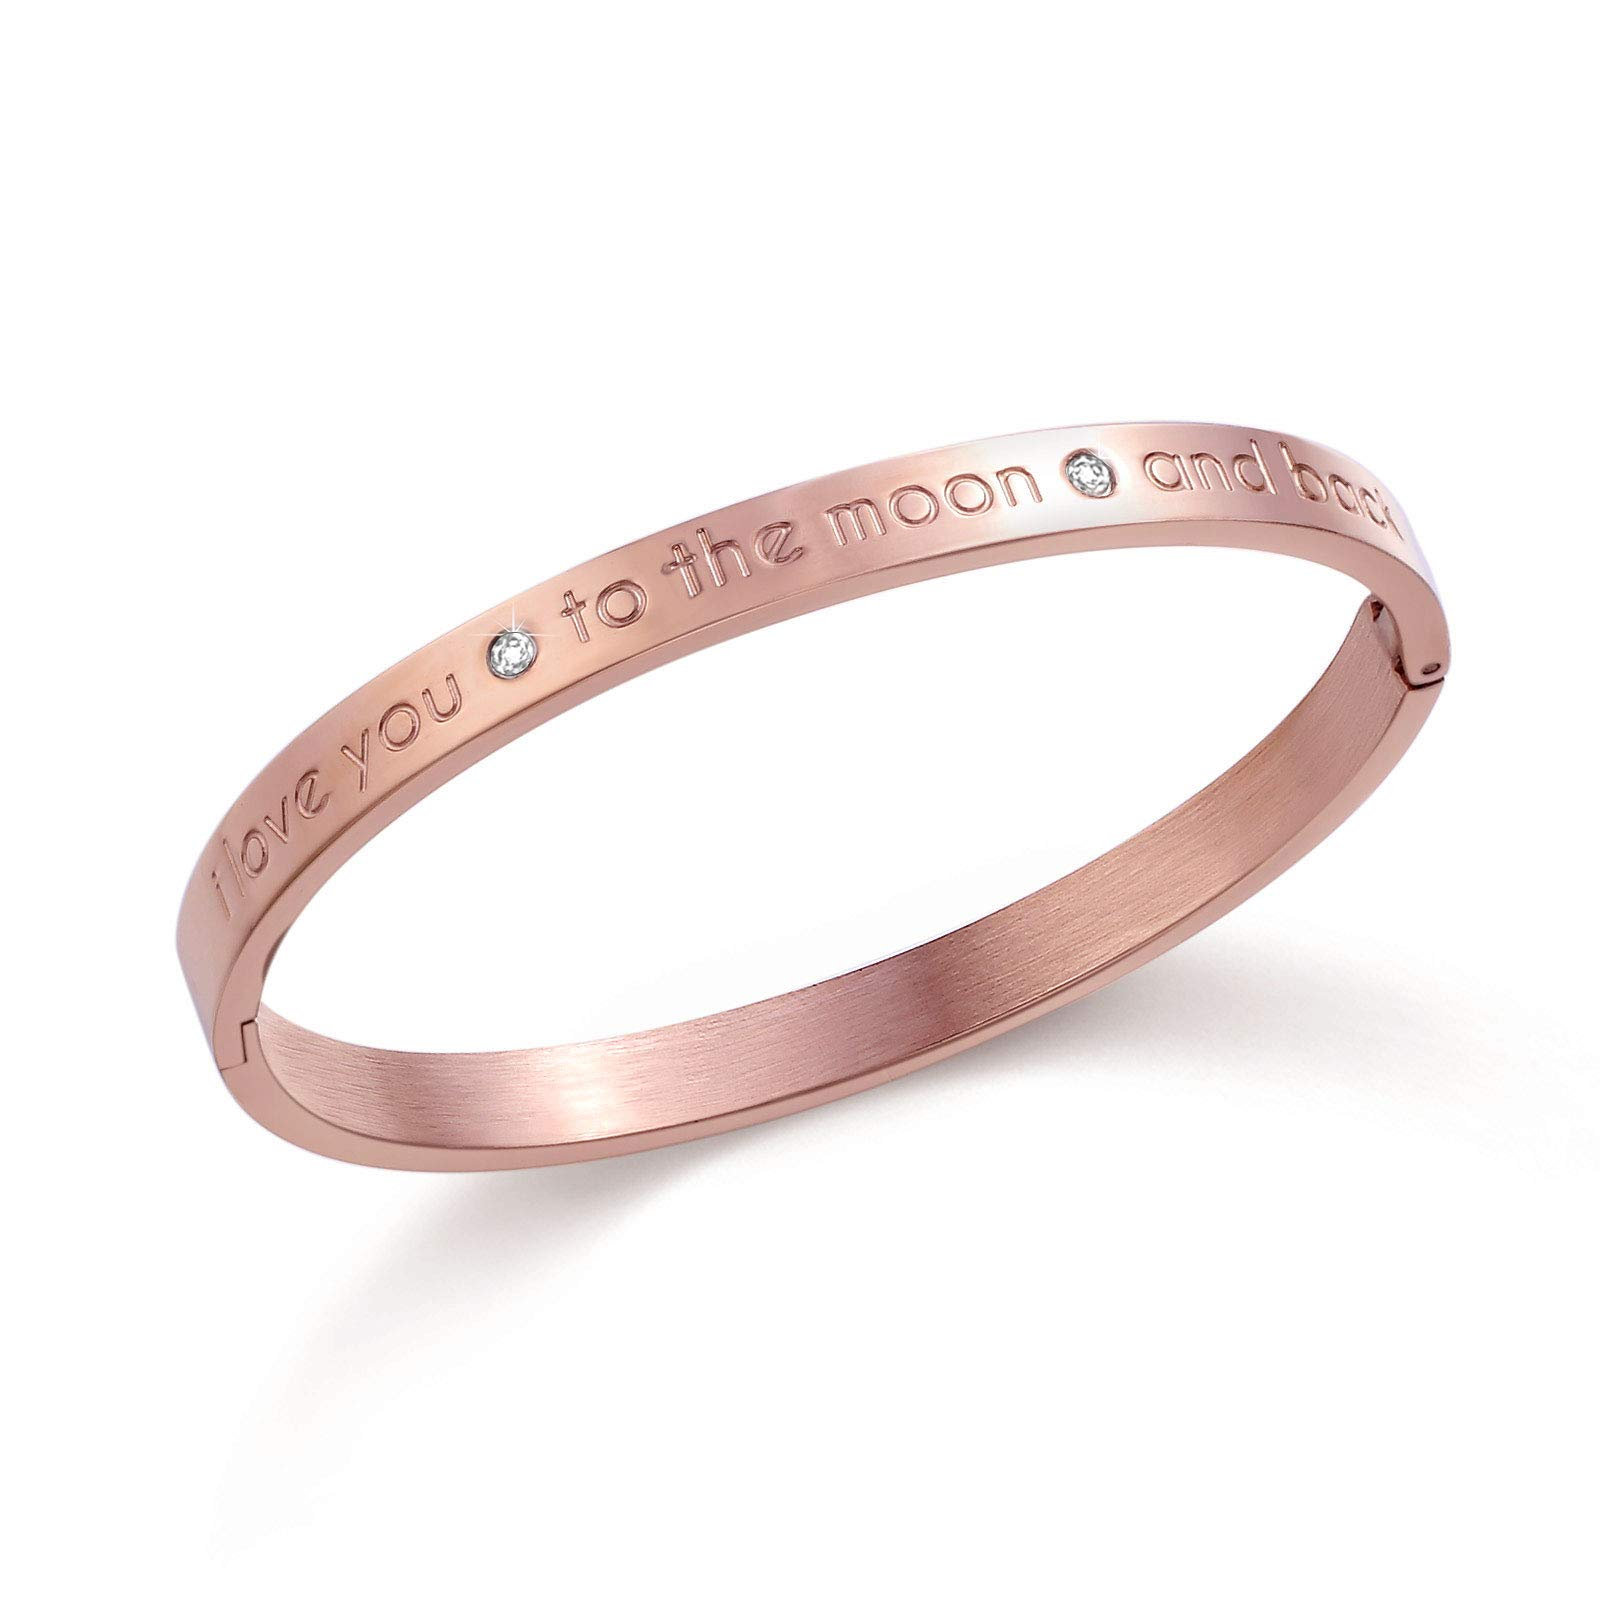 Fullrainbow Stainless Steel Jewelry Sister Gifts from Sisters Diamond Bracelet Rose Gold Engraved Bracelet I Love You to The Moon and Back (Rose Gold)